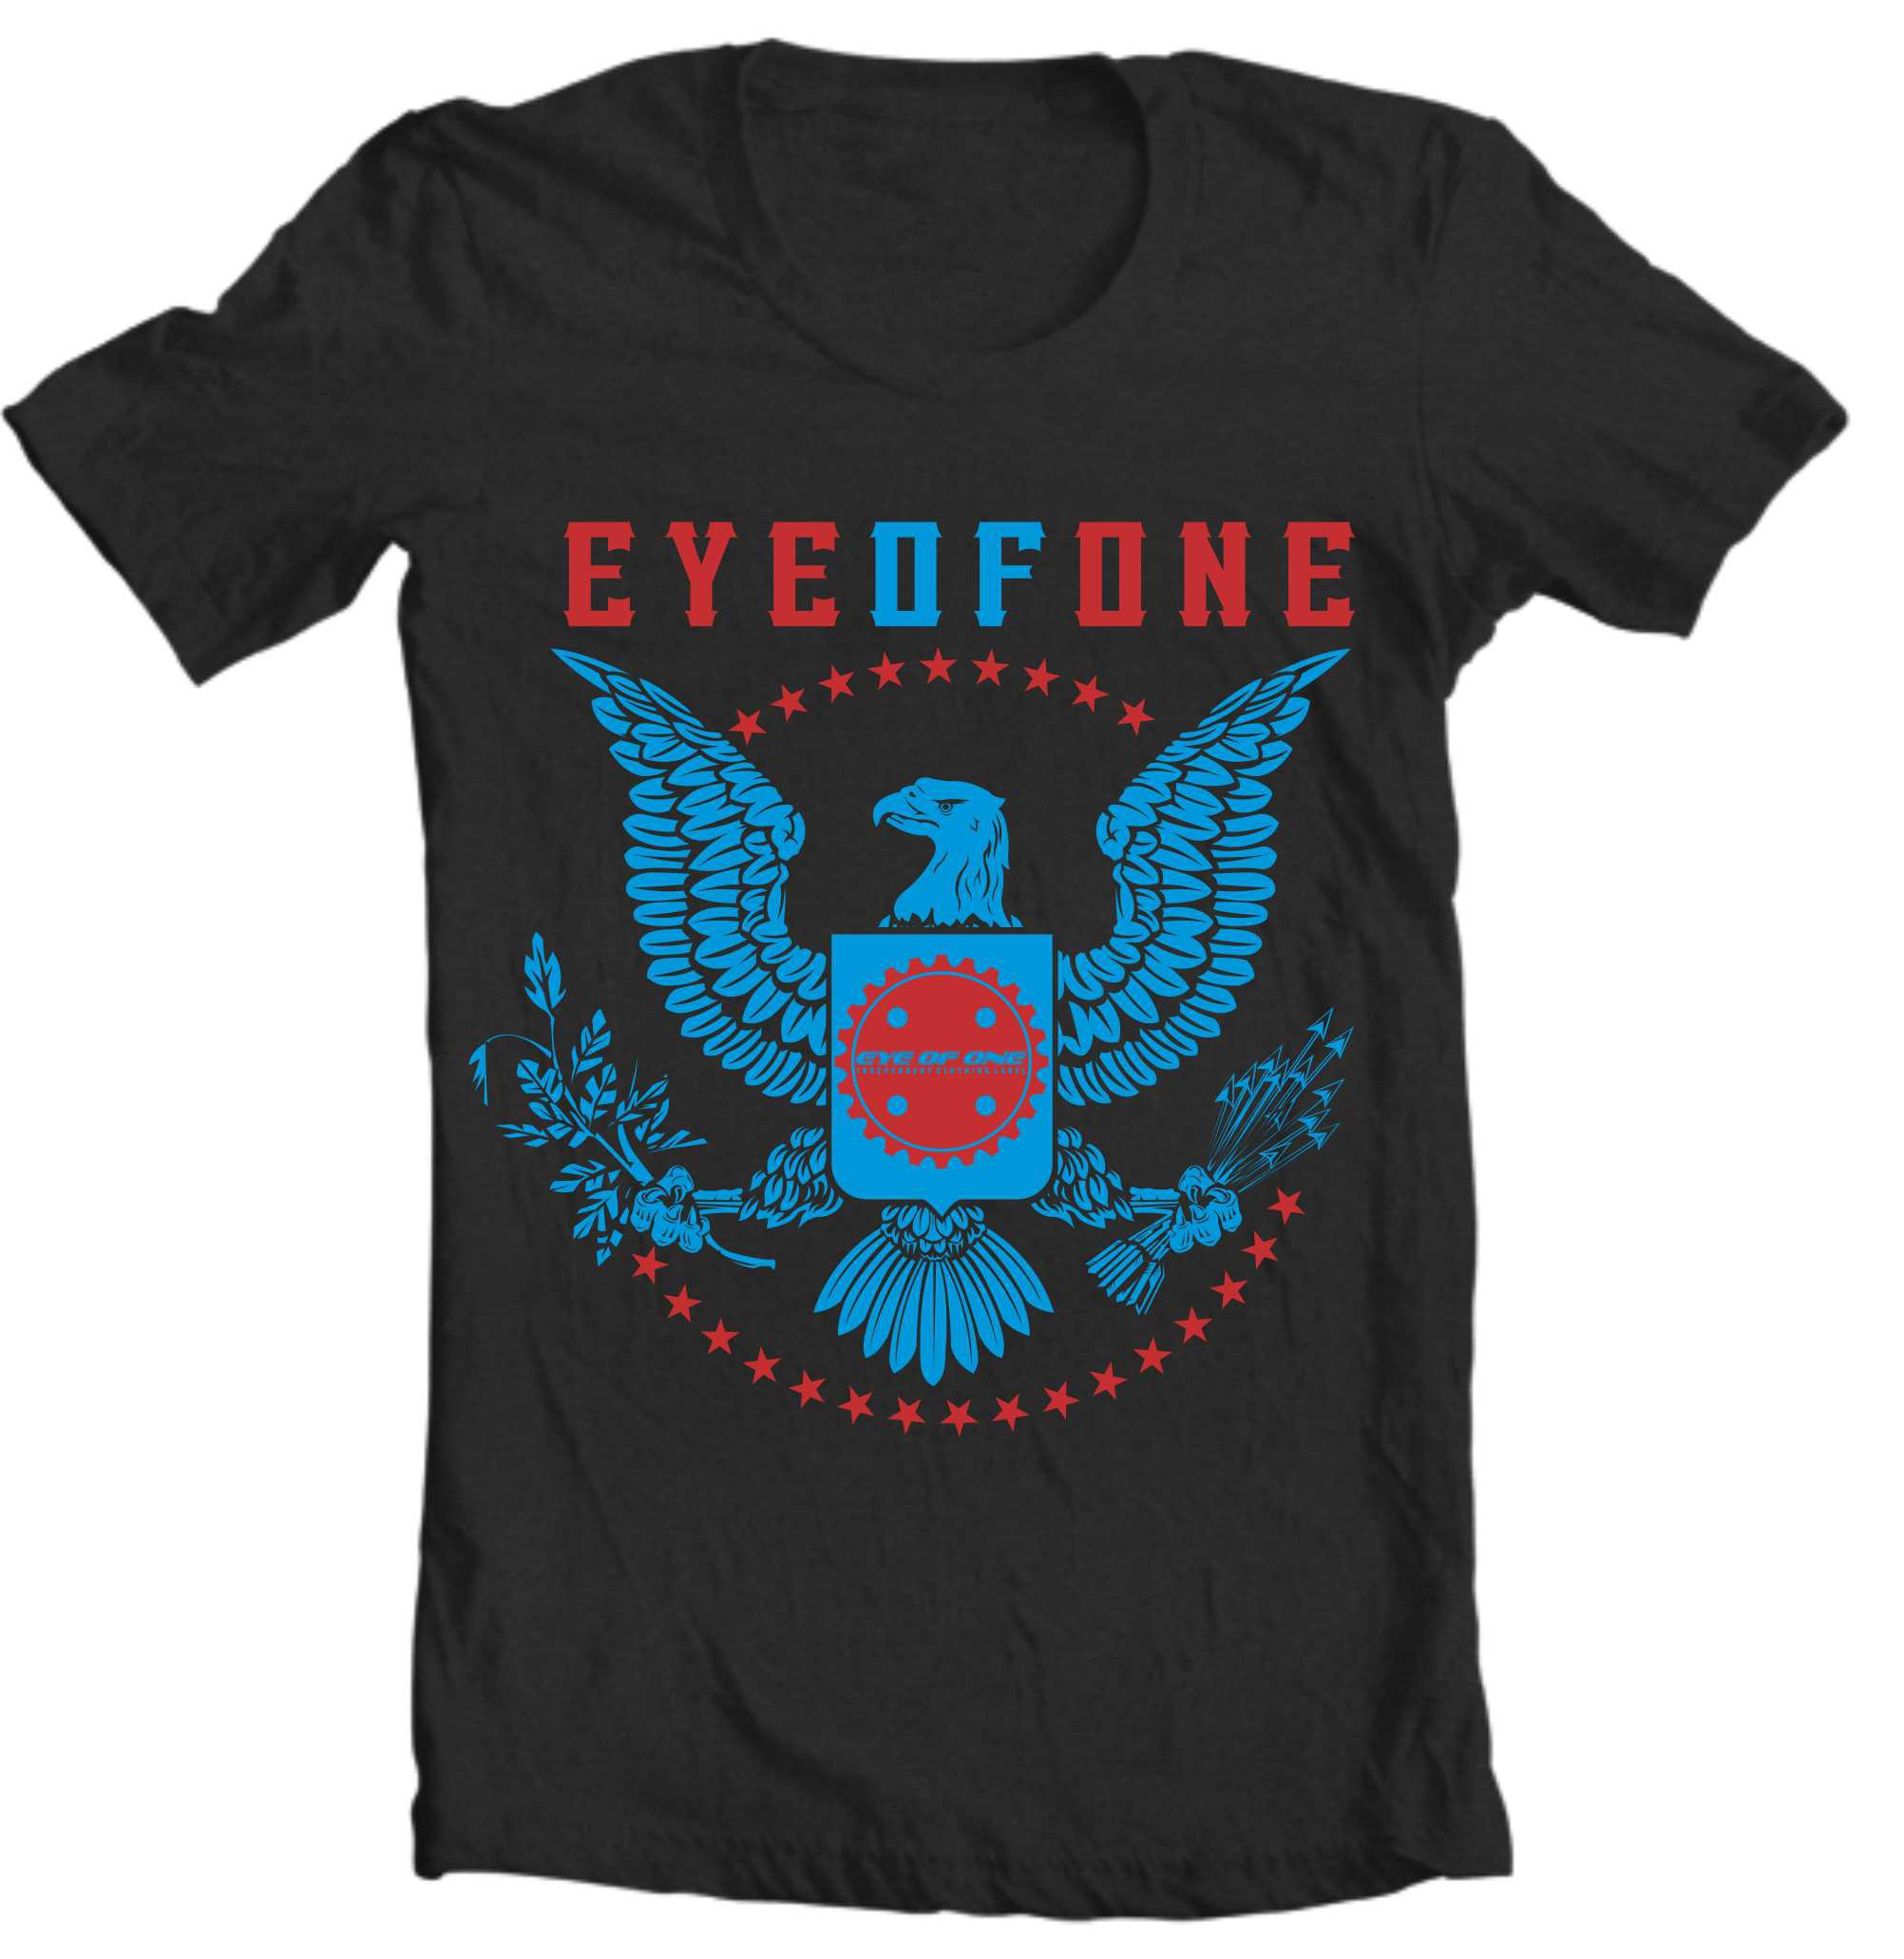 New t-shirt design wanted for Eye Of One Clothing